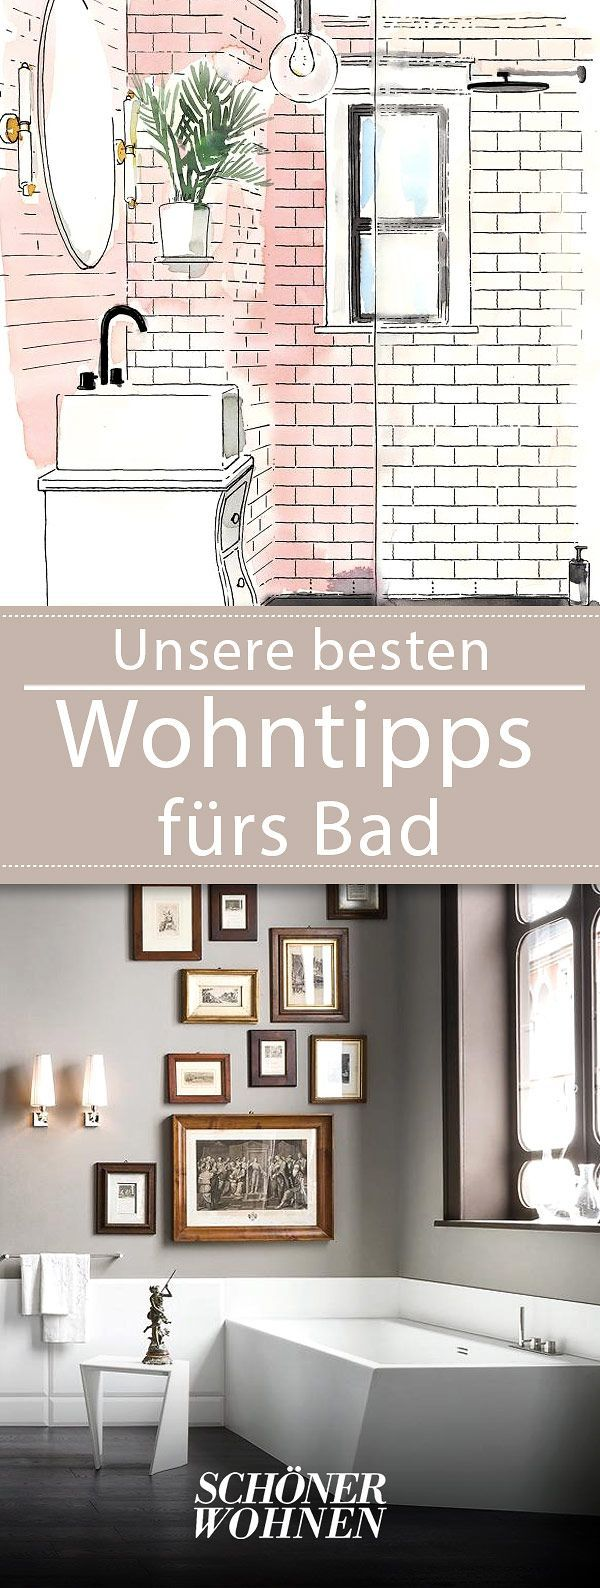 259 best Badezimmer images on Pinterest